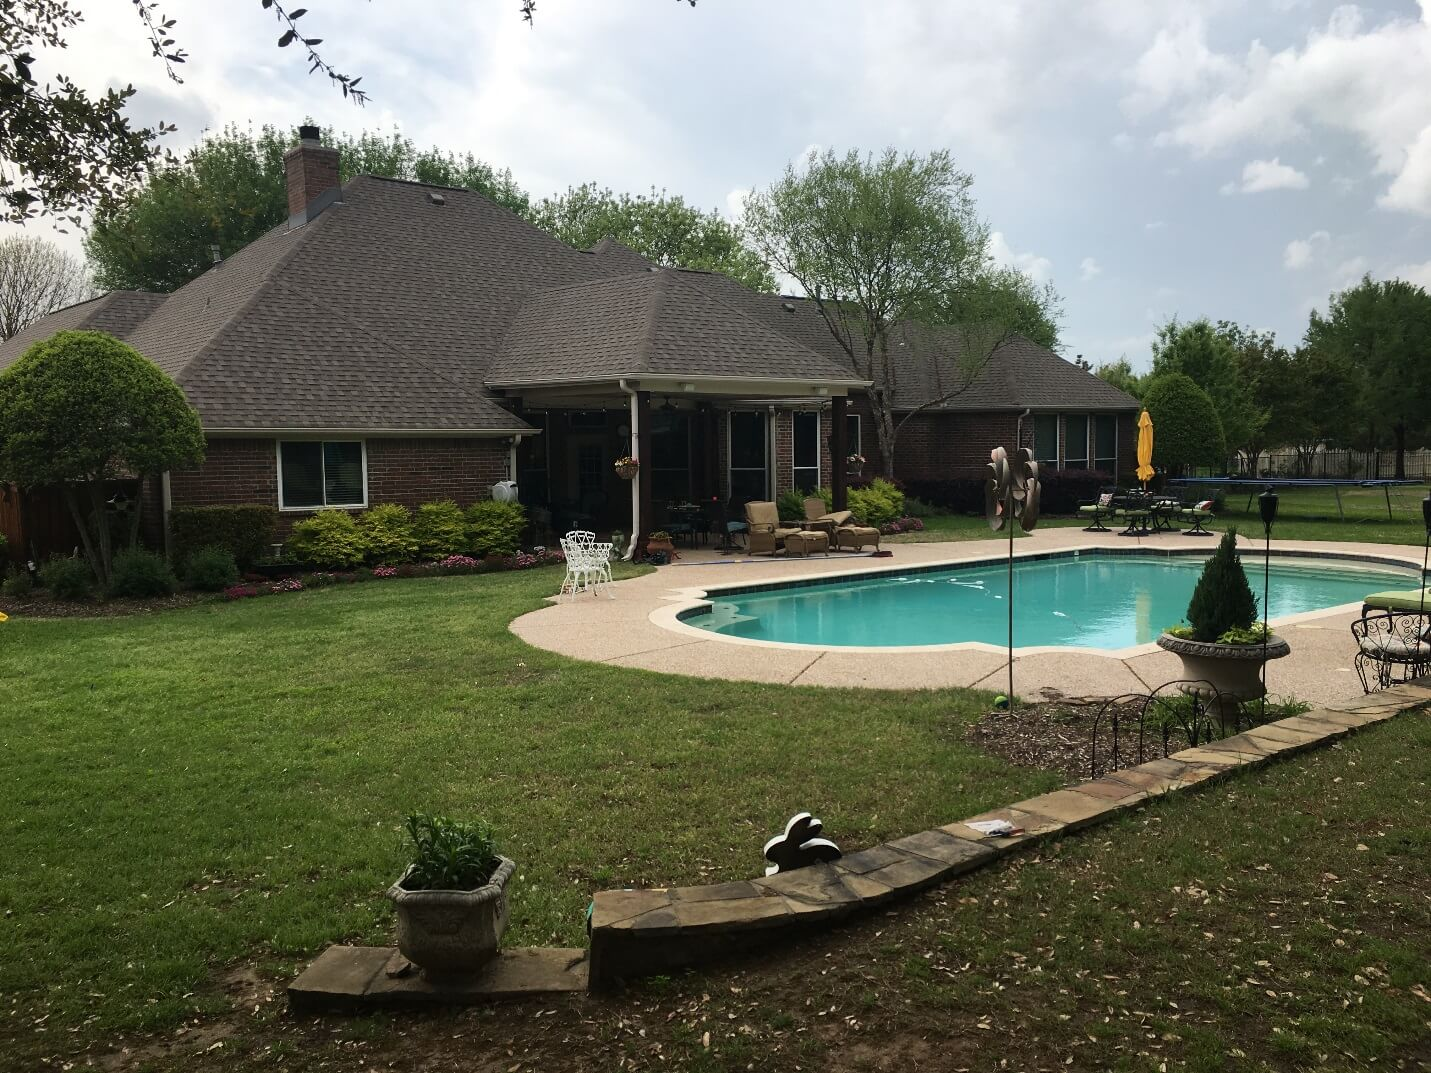 Backyard With Pool And Sitting Areas